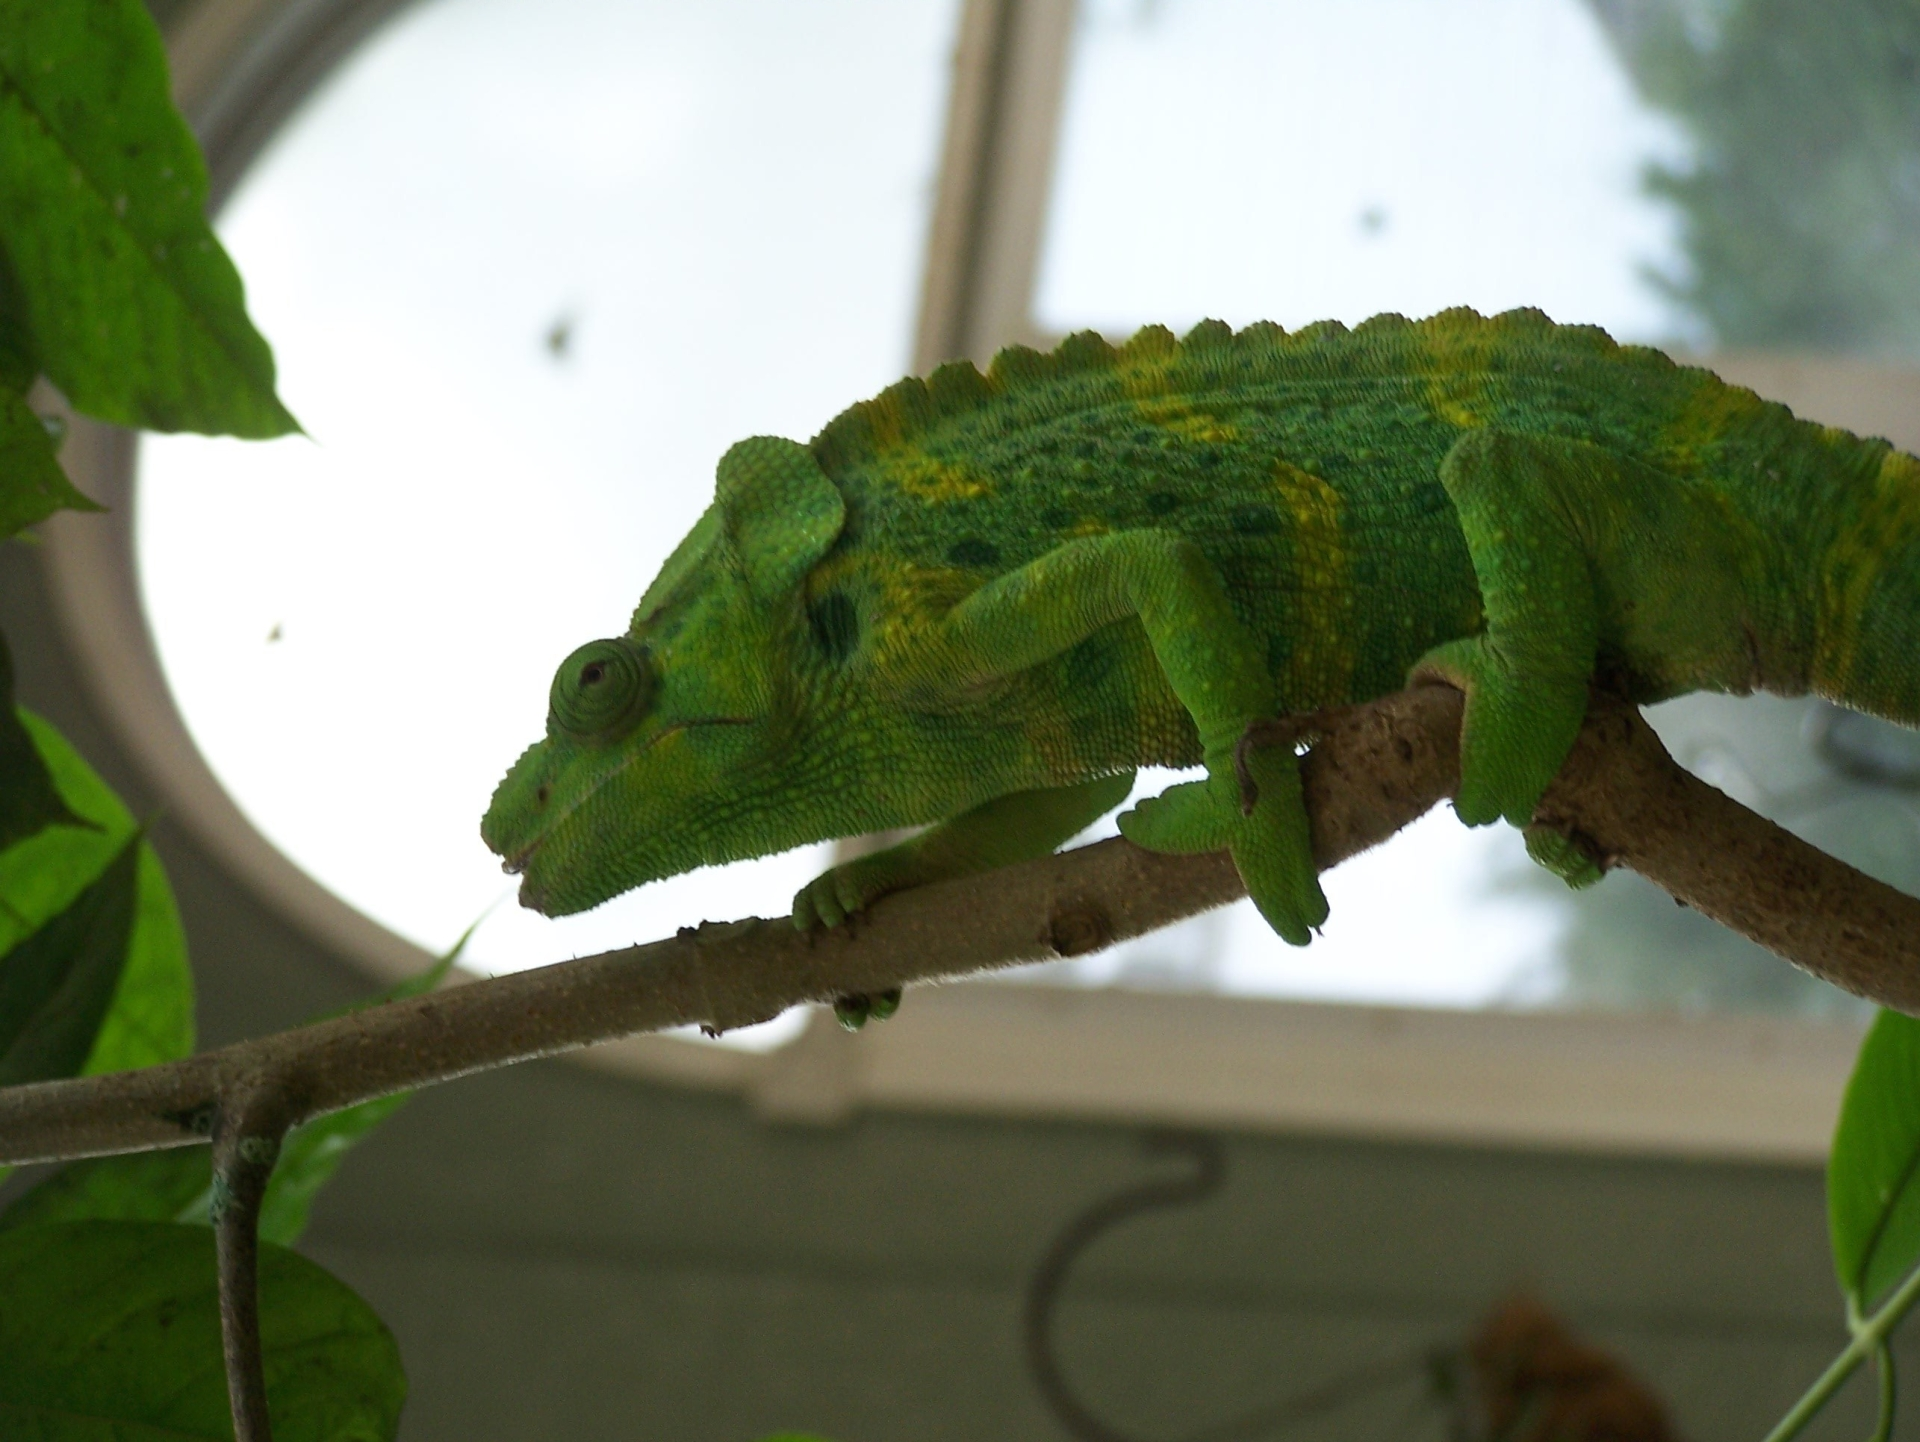 A chameleon walking up a tree branch in a butterfly conservatory.